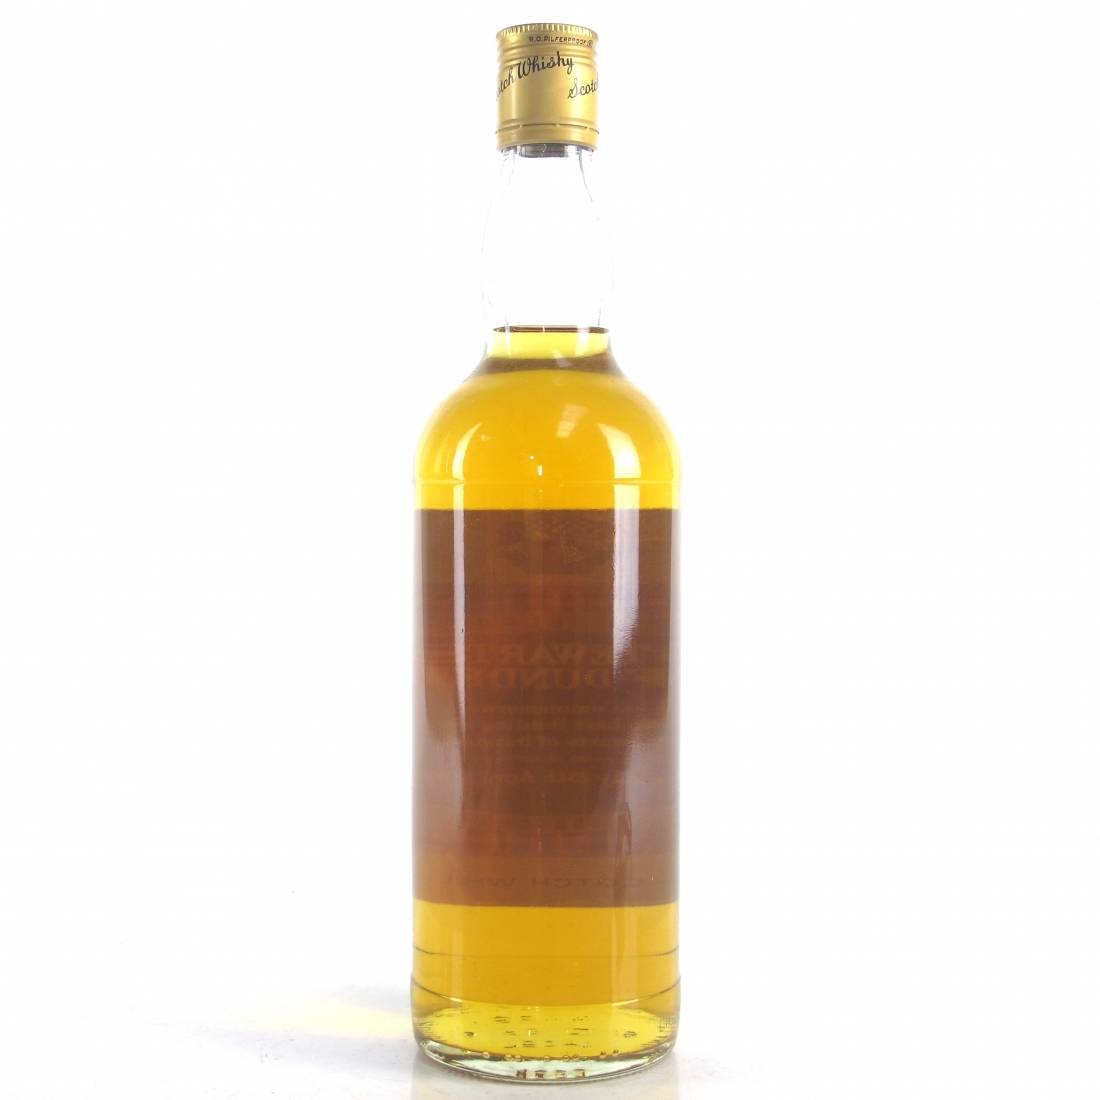 Stewarts of Dundee Rare 1831 - 1995 Last Bottling